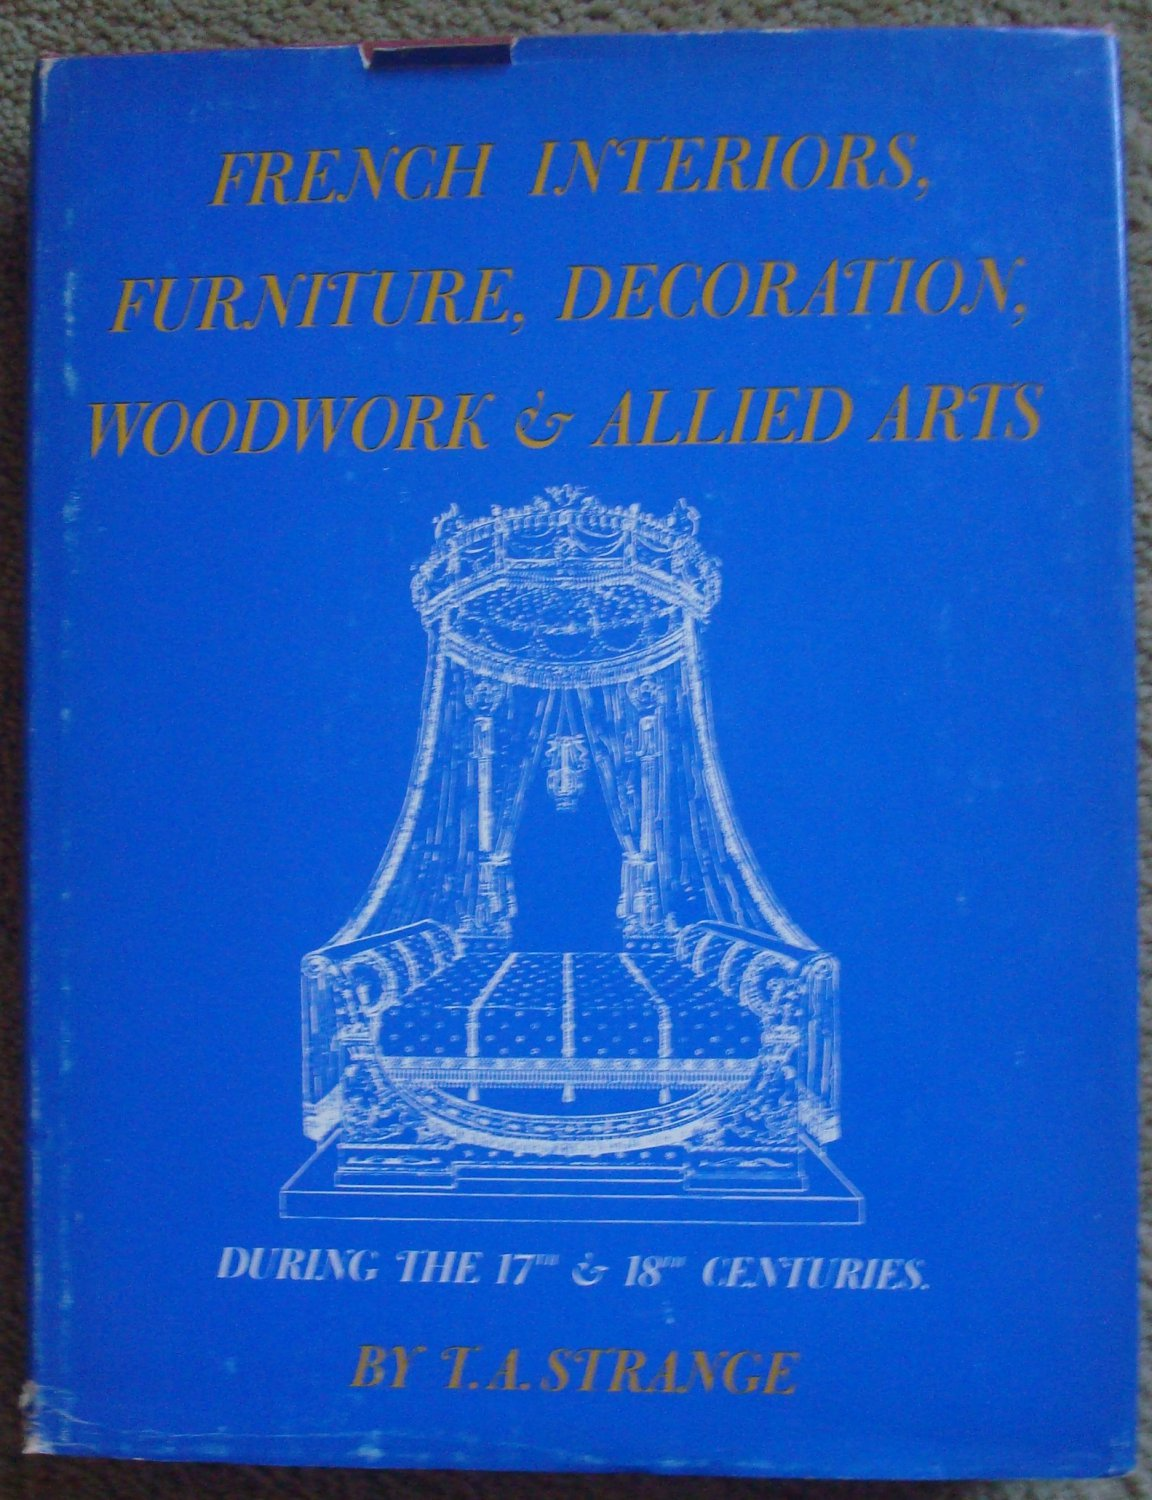 French Interiors, Furniture, Decoration, Woodwork, & Allied Arts During the 17th & 18th Centuries